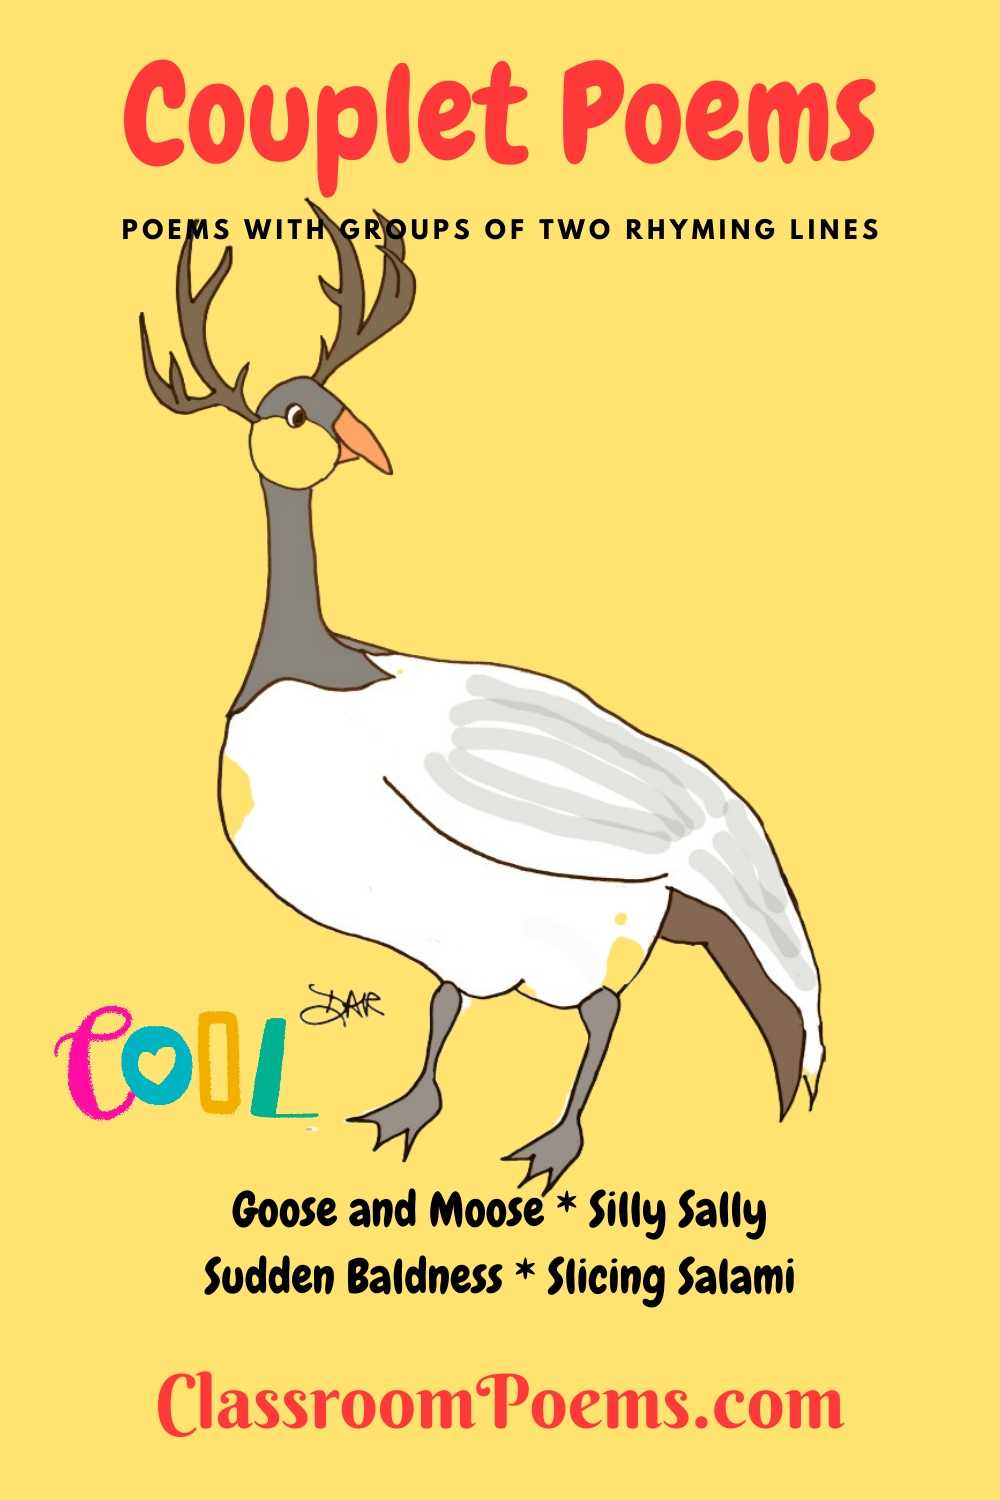 GOOSE AND MOOSE couplet poem by Denise Rodgers on ClassroomPoems.com.